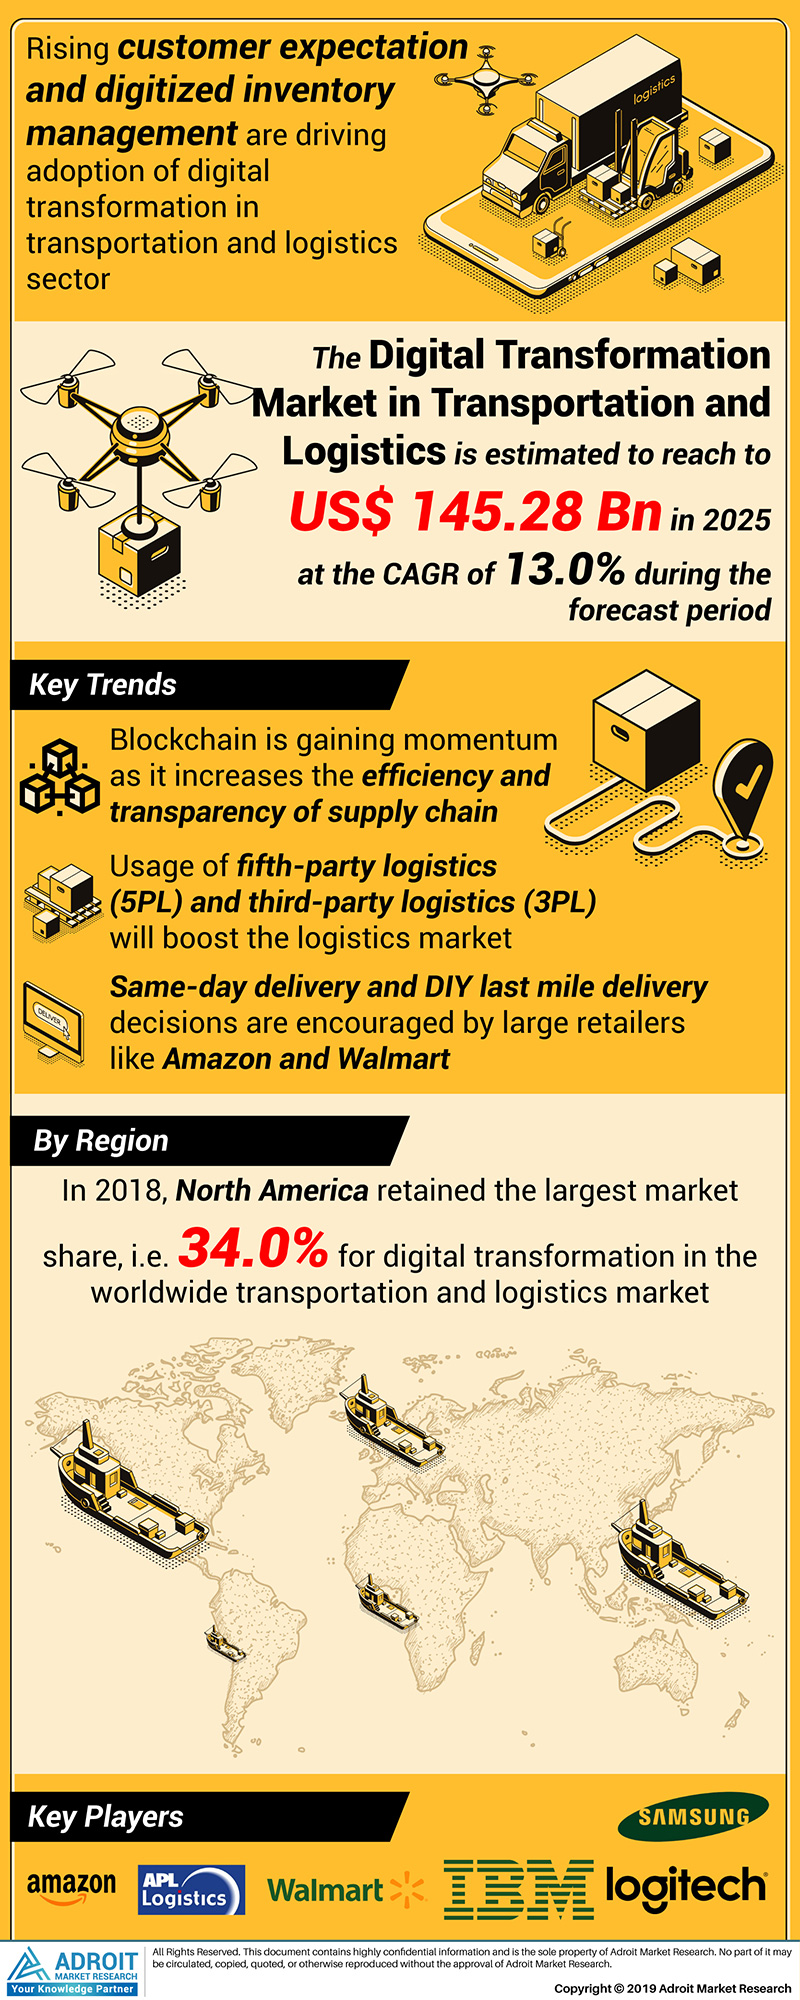 Global Digital Transformation in Transportation and Logistics Market Size 2017 By Type, End-Use, Region and Forecast 2018 to 2025